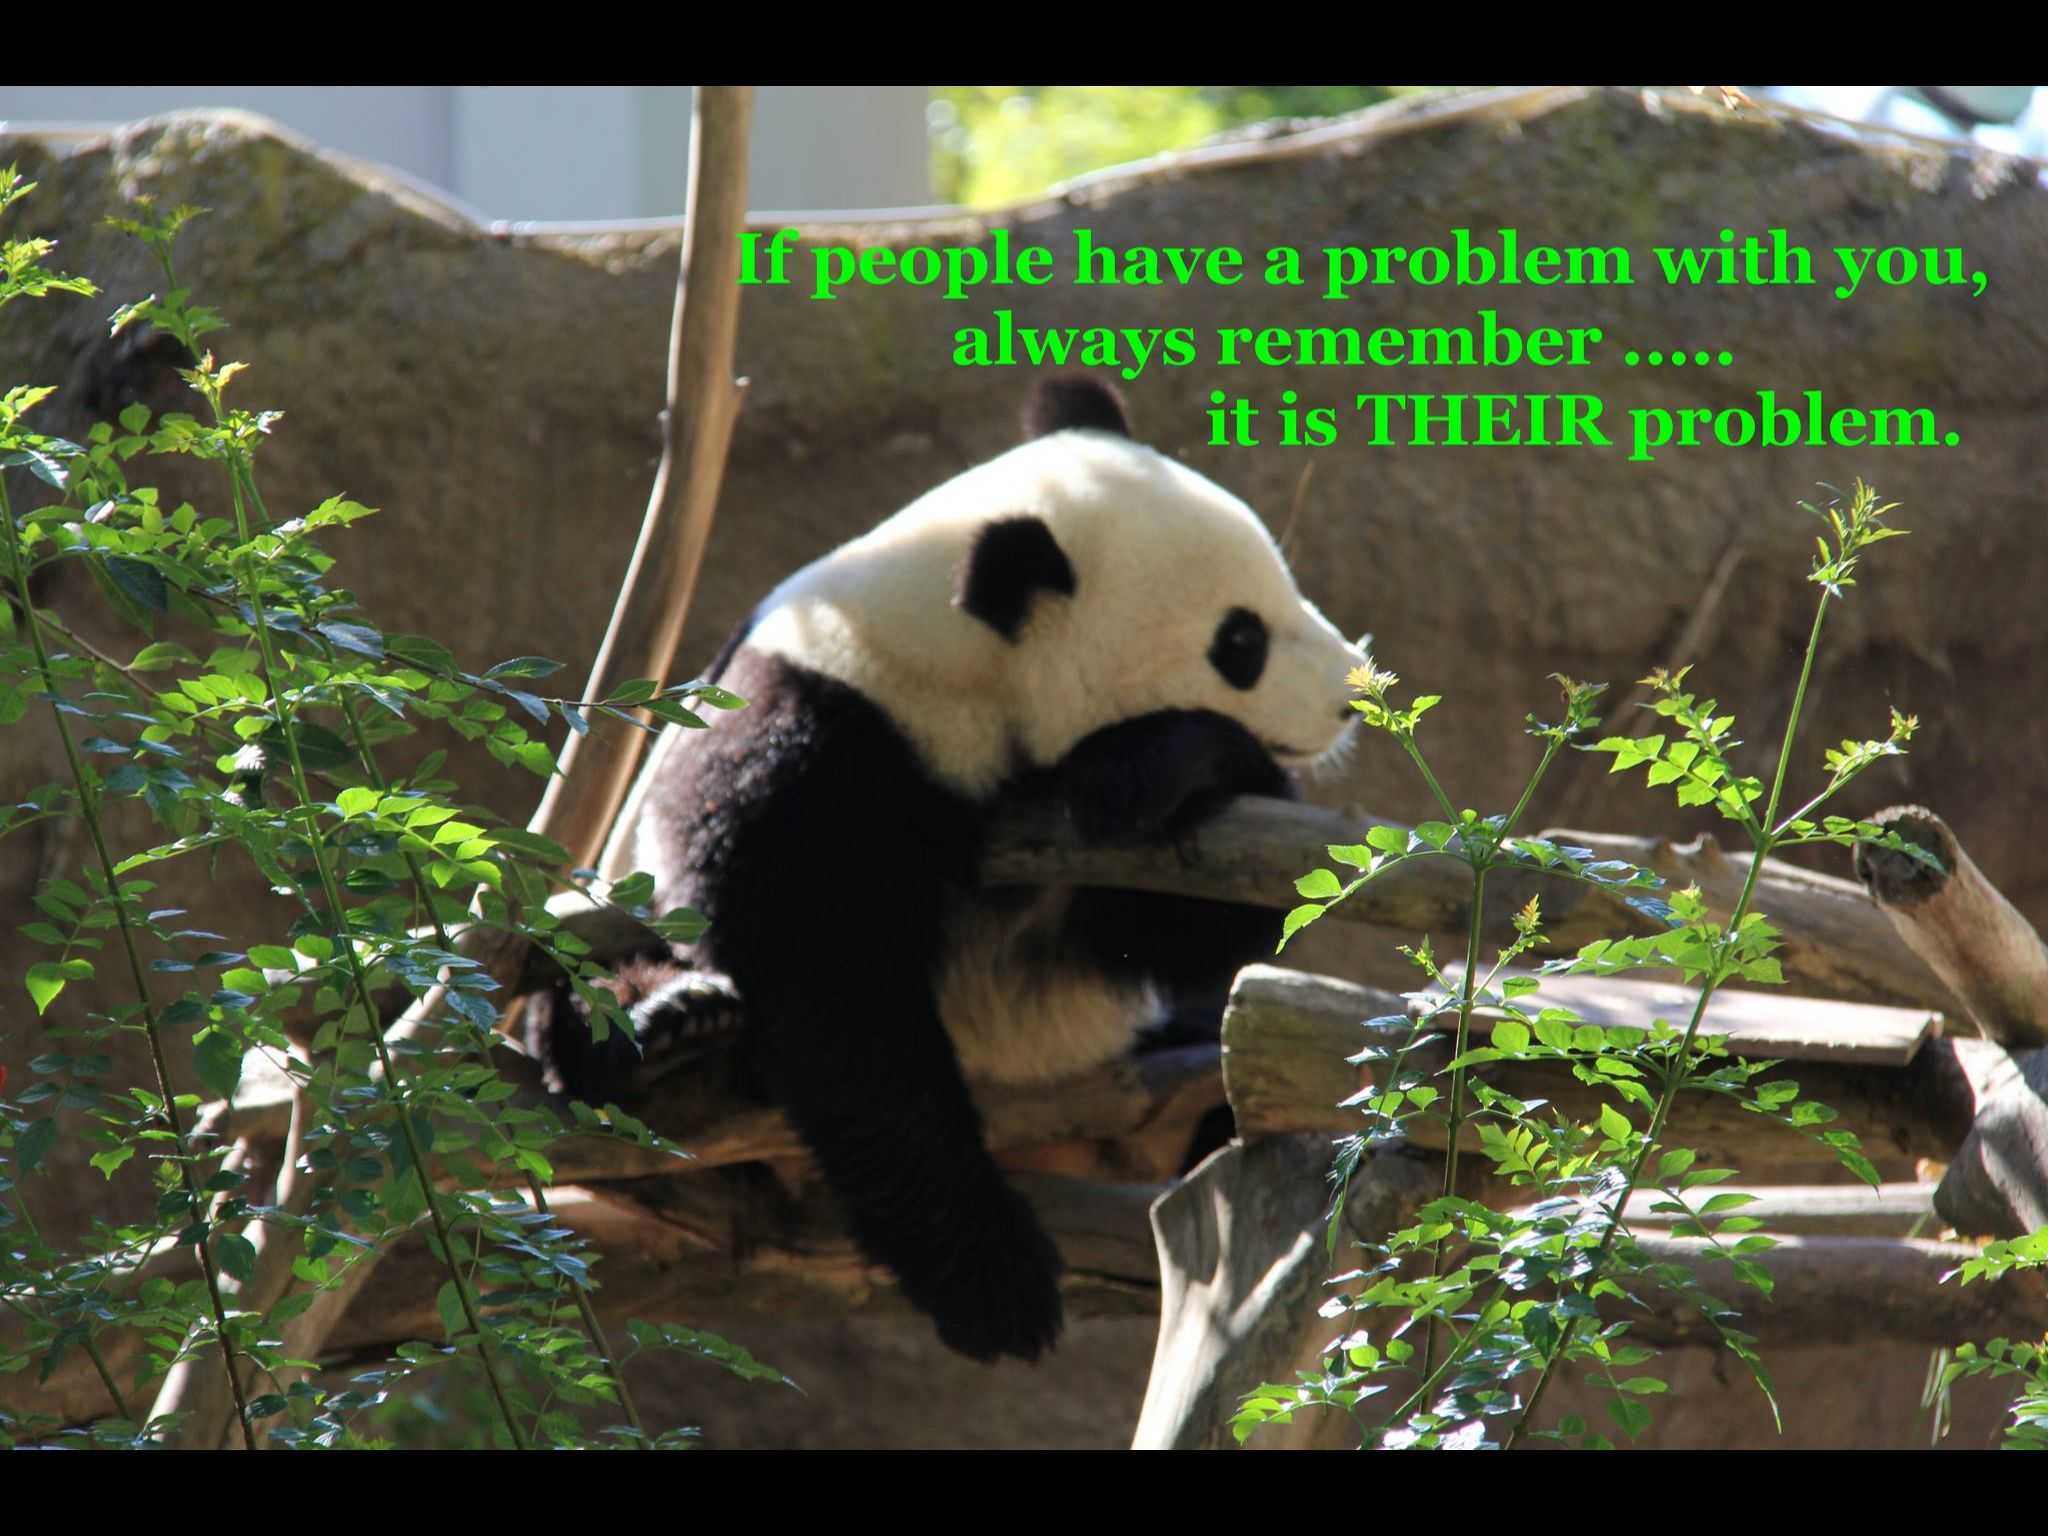 If people have a problem with you, always remember - it is THEIR problem.